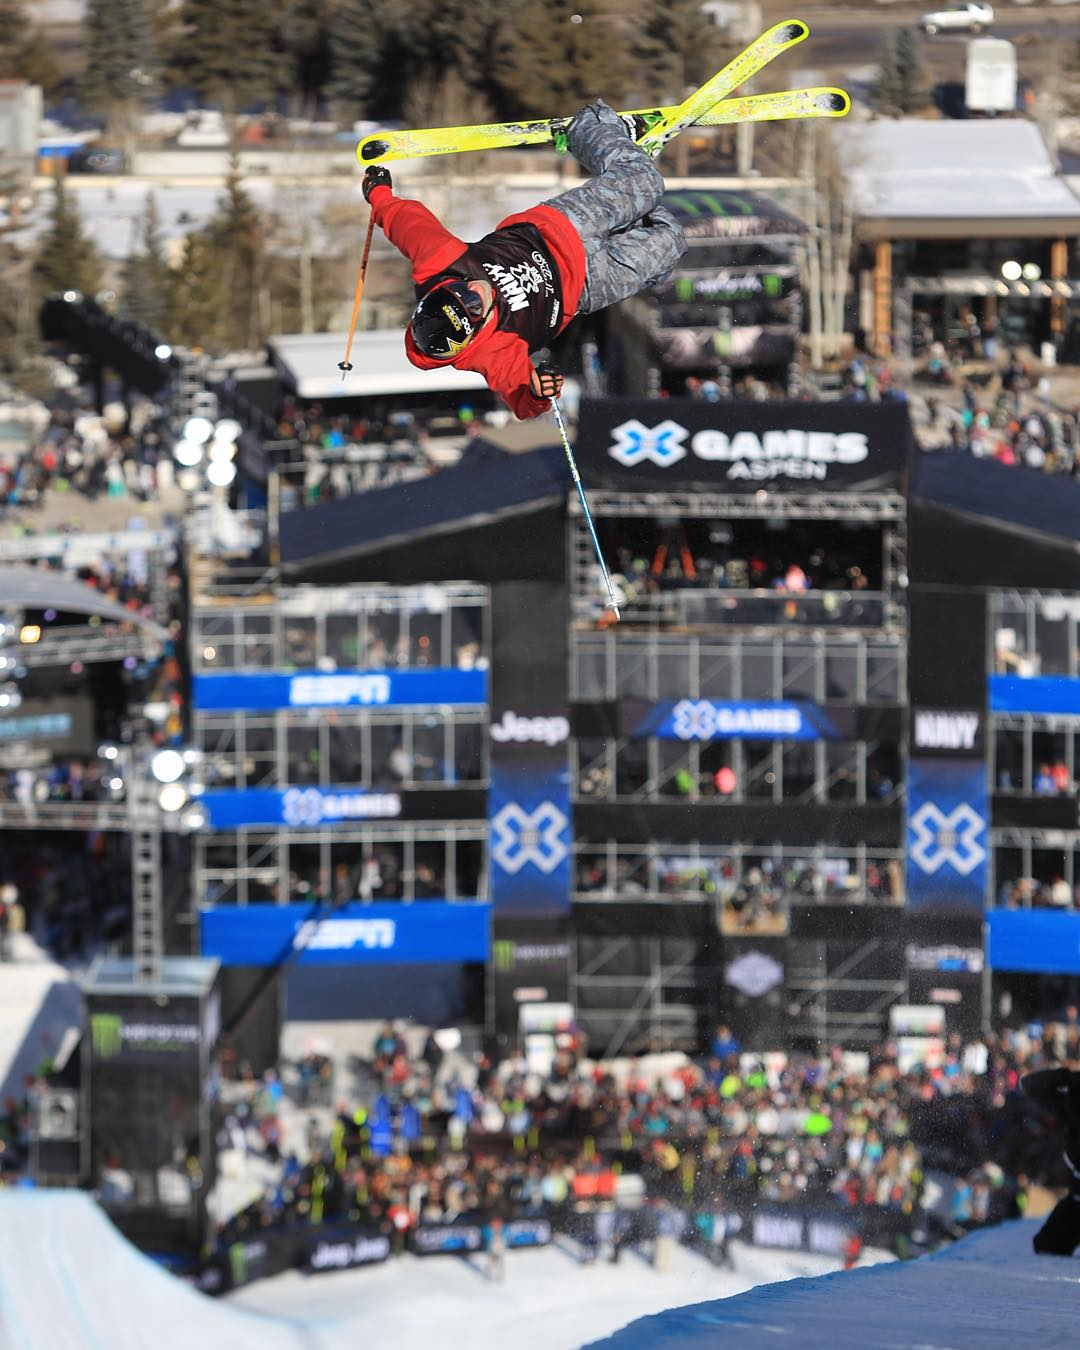 If you want the ultimate #XGames Aspen experience, check out our exclusive platinum pass!  Hit up XGames.com to floss out.